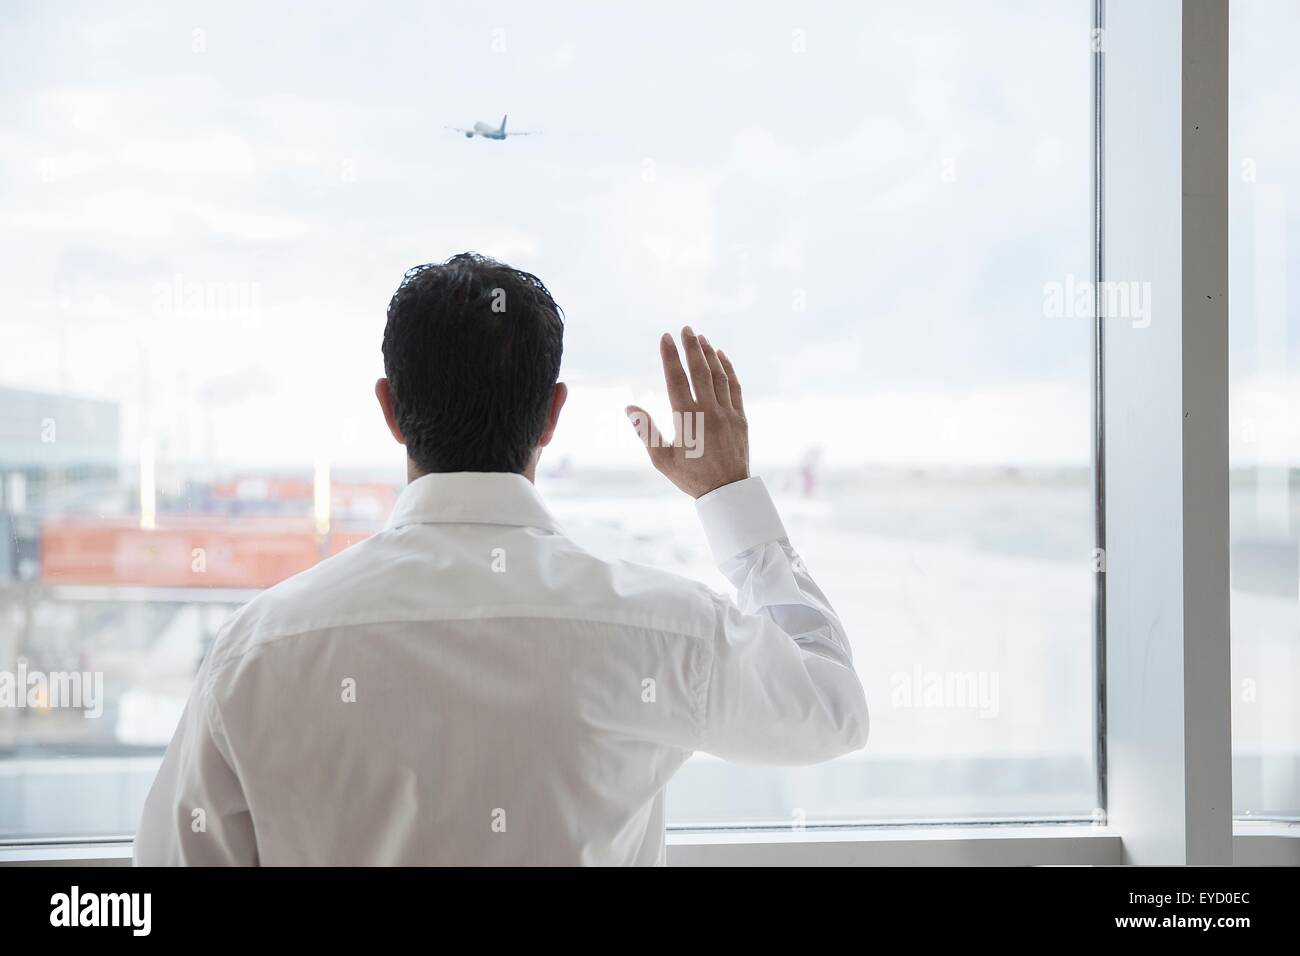 Rear view of dock harbormaster waving from control room - Stock Image